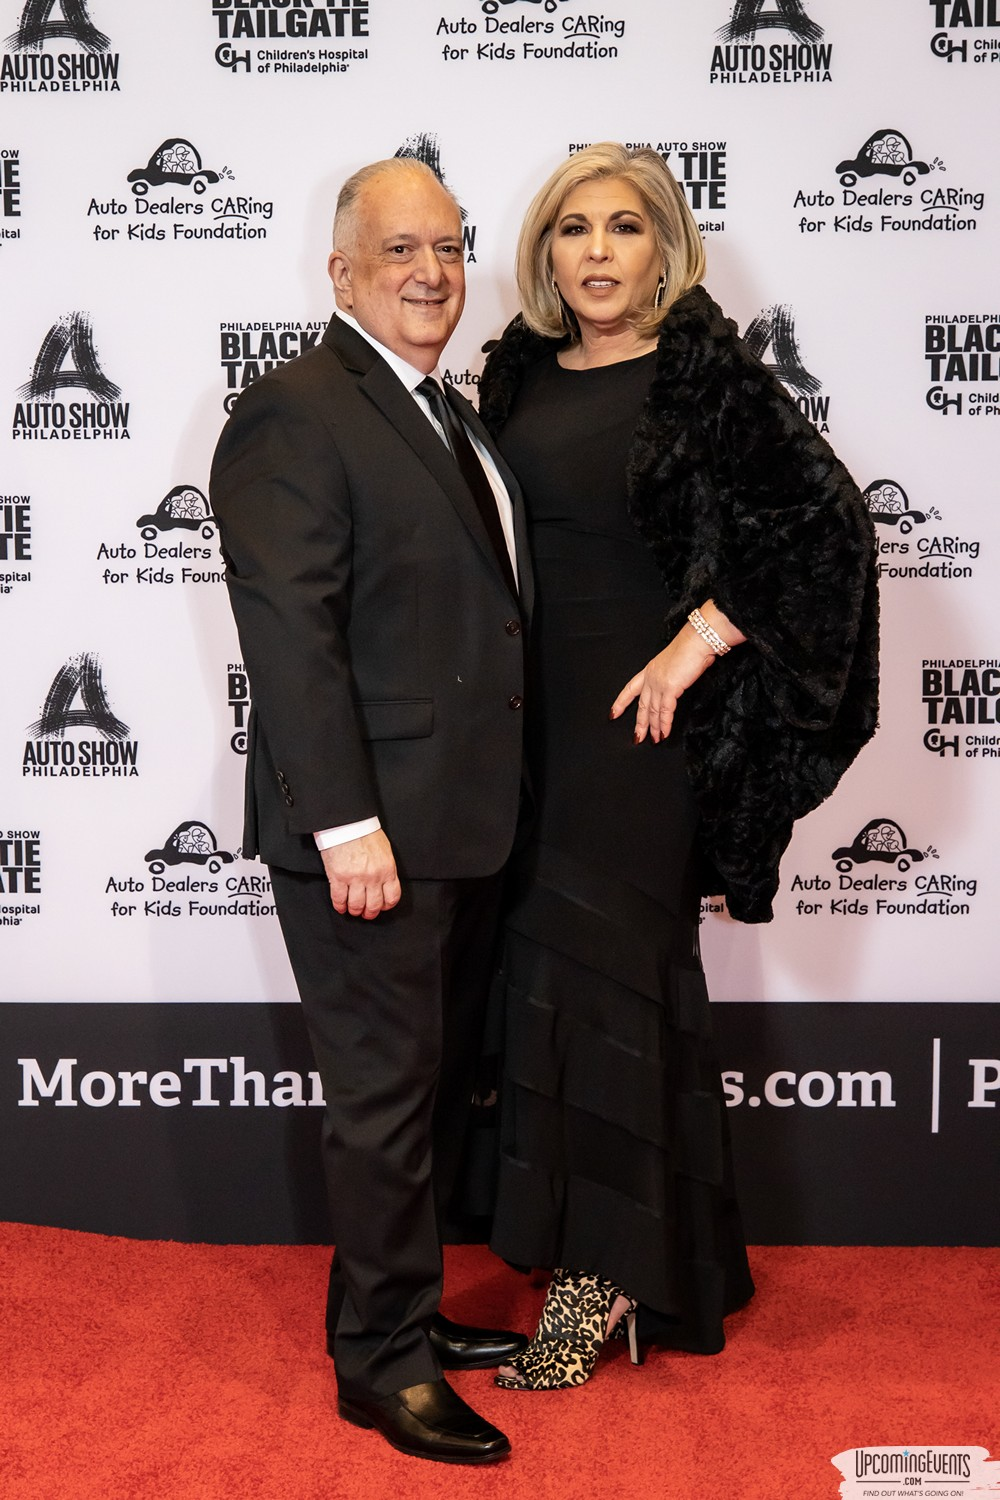 Photo from Black Tie Tailgate 2020 (The Red Carpet)